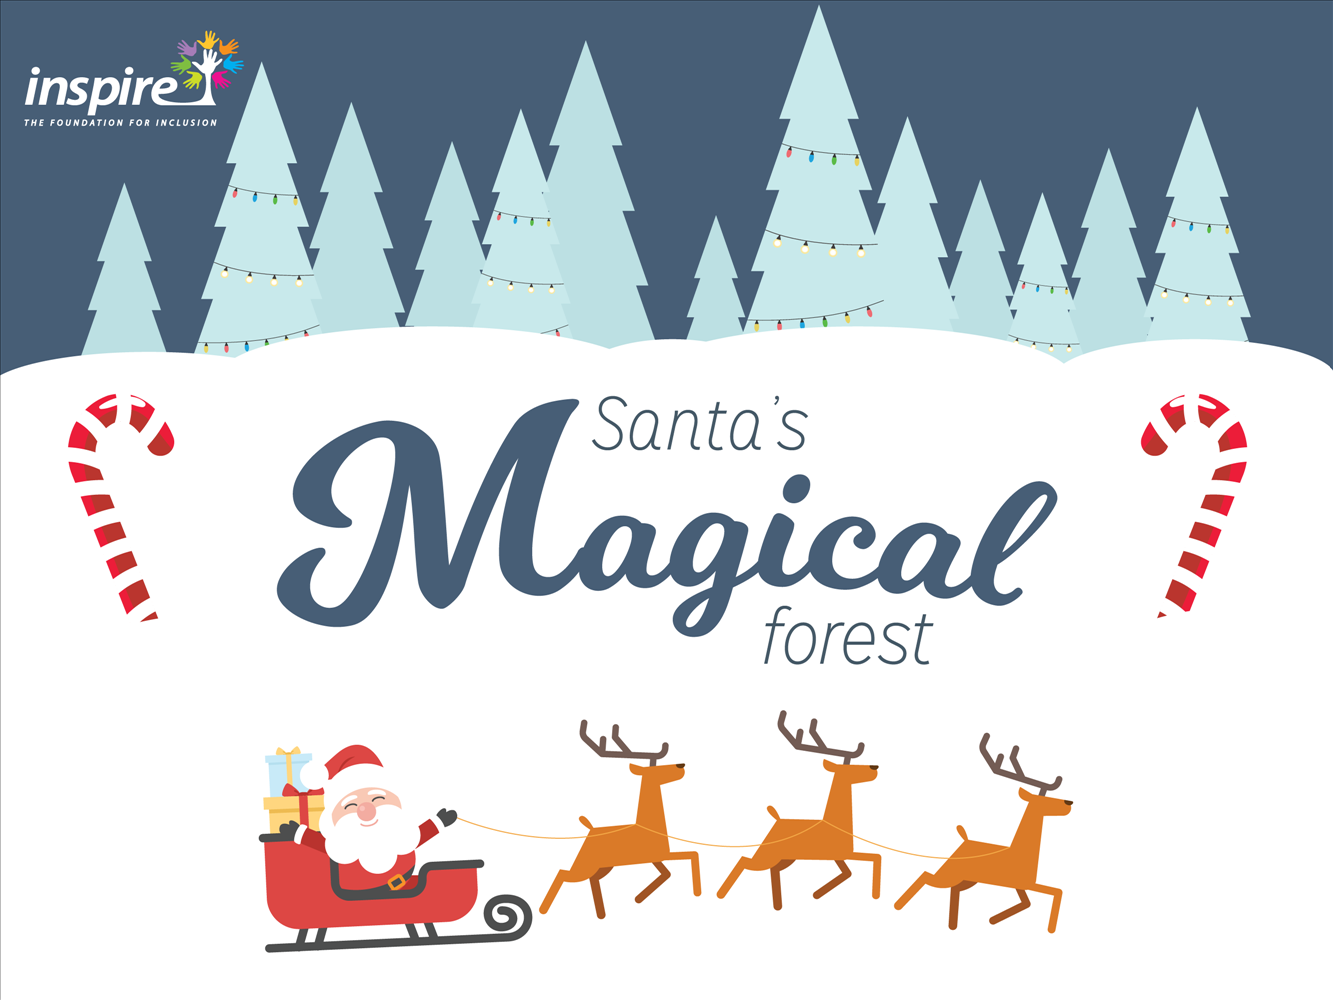 Santa's Magical Forest flyer